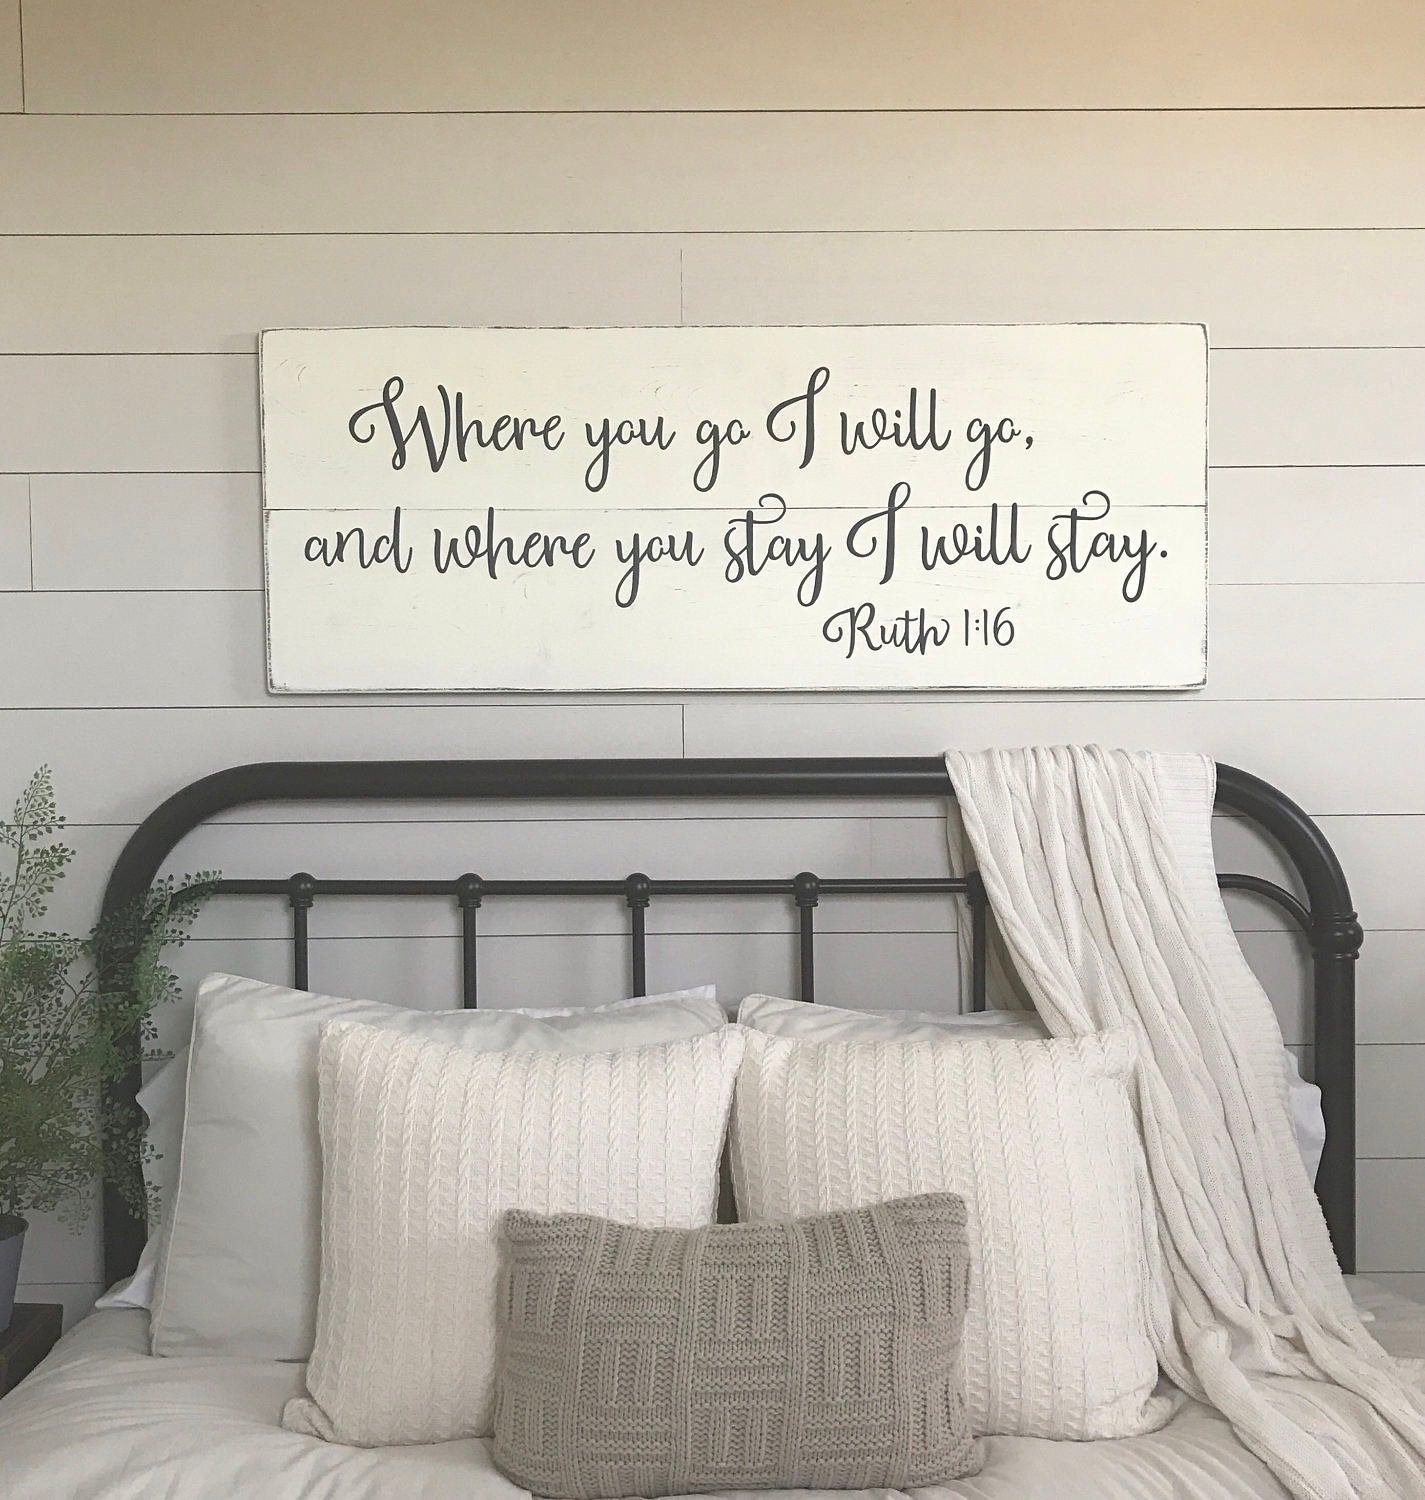 Best Bedroom Wall Decor Where You Go I Will Go Wood Signs Etsy With Pictures